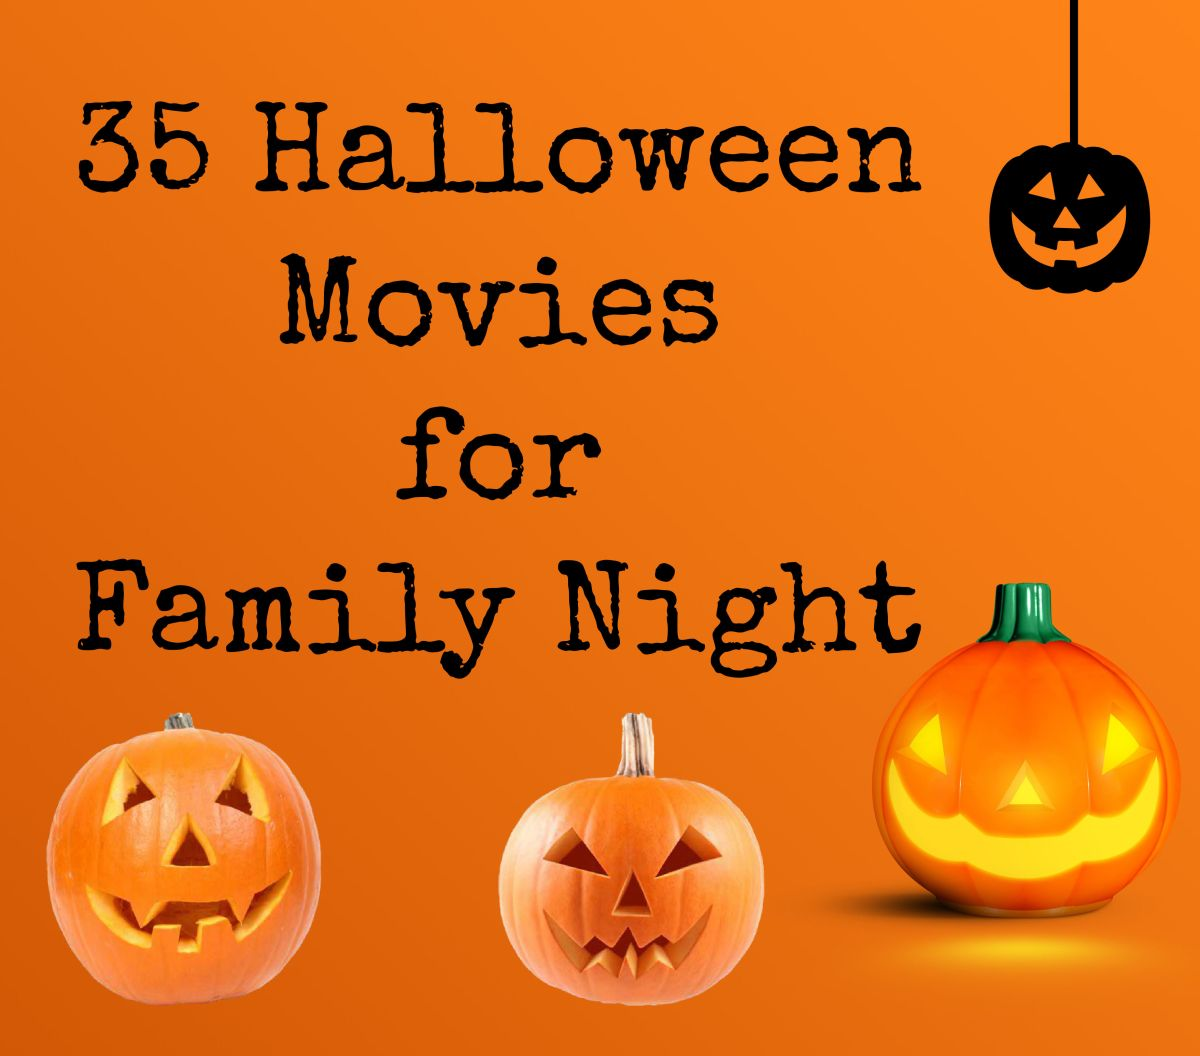 35 Halloween Movies for FamilyNight